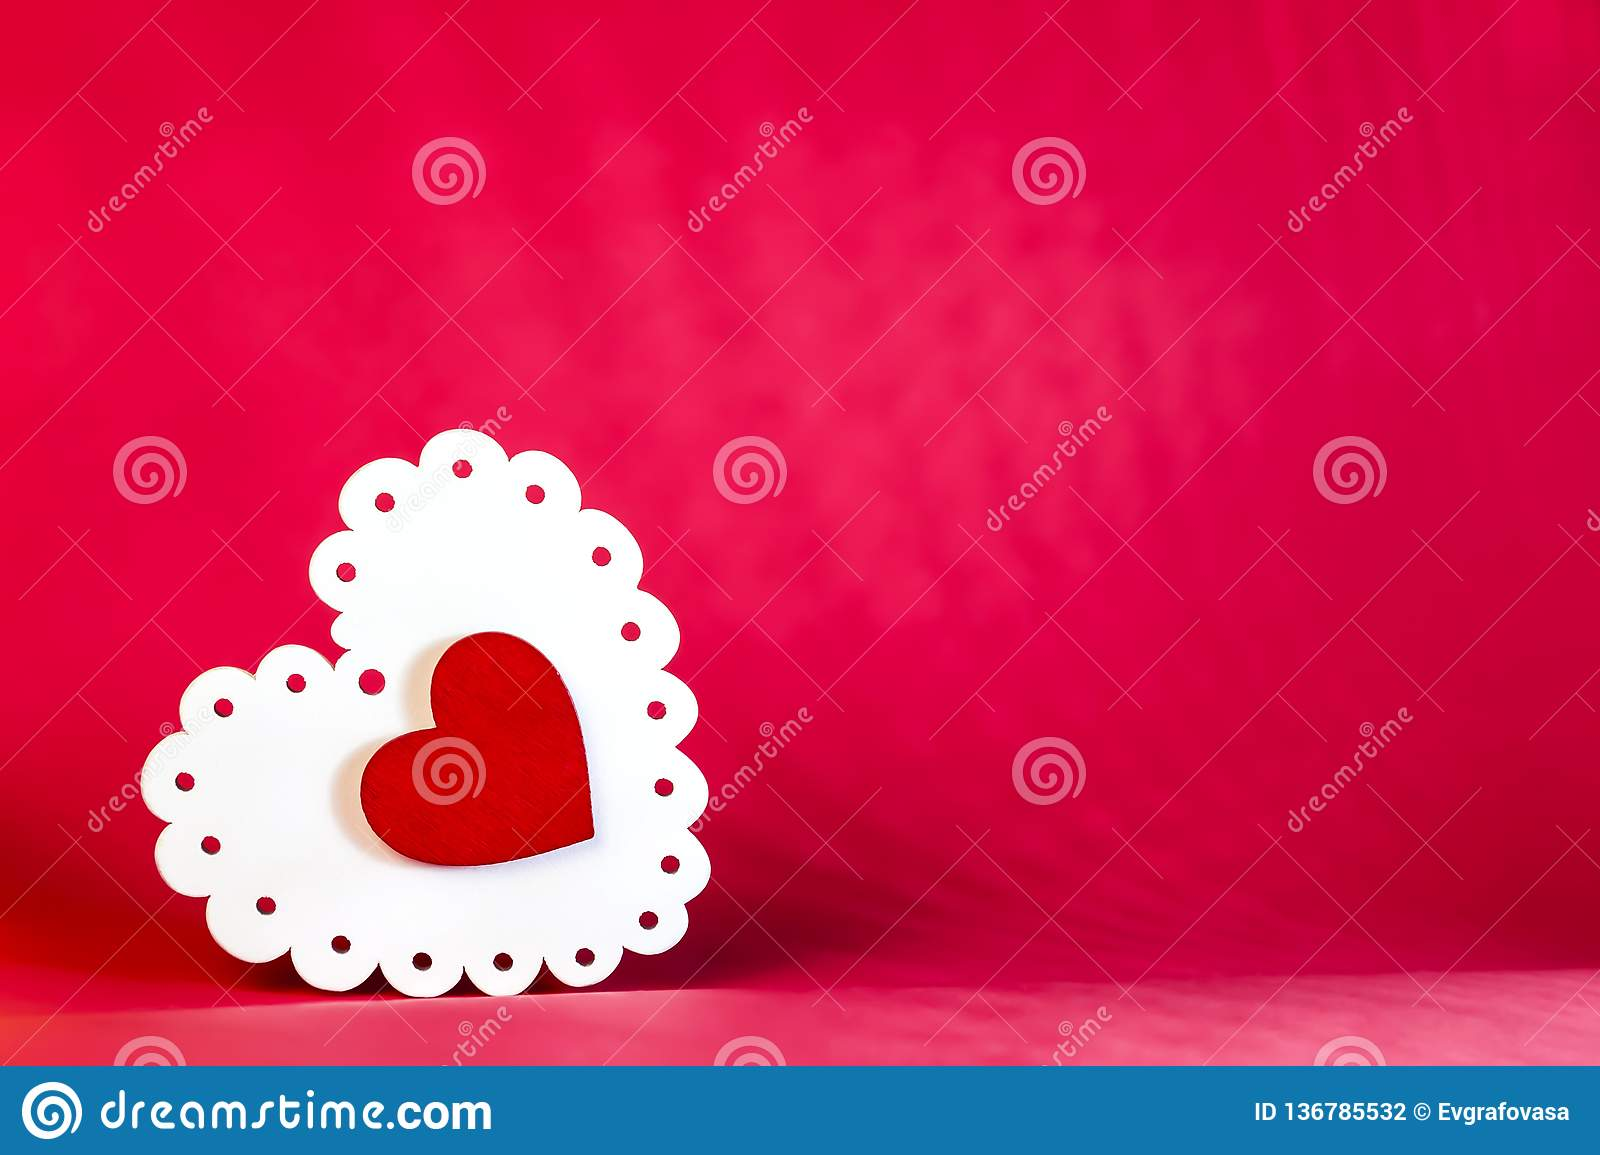 Valentine`s day holiday, mother`s day, March 8, wedding invitation. Symbol of love white wooden heart on a red background with